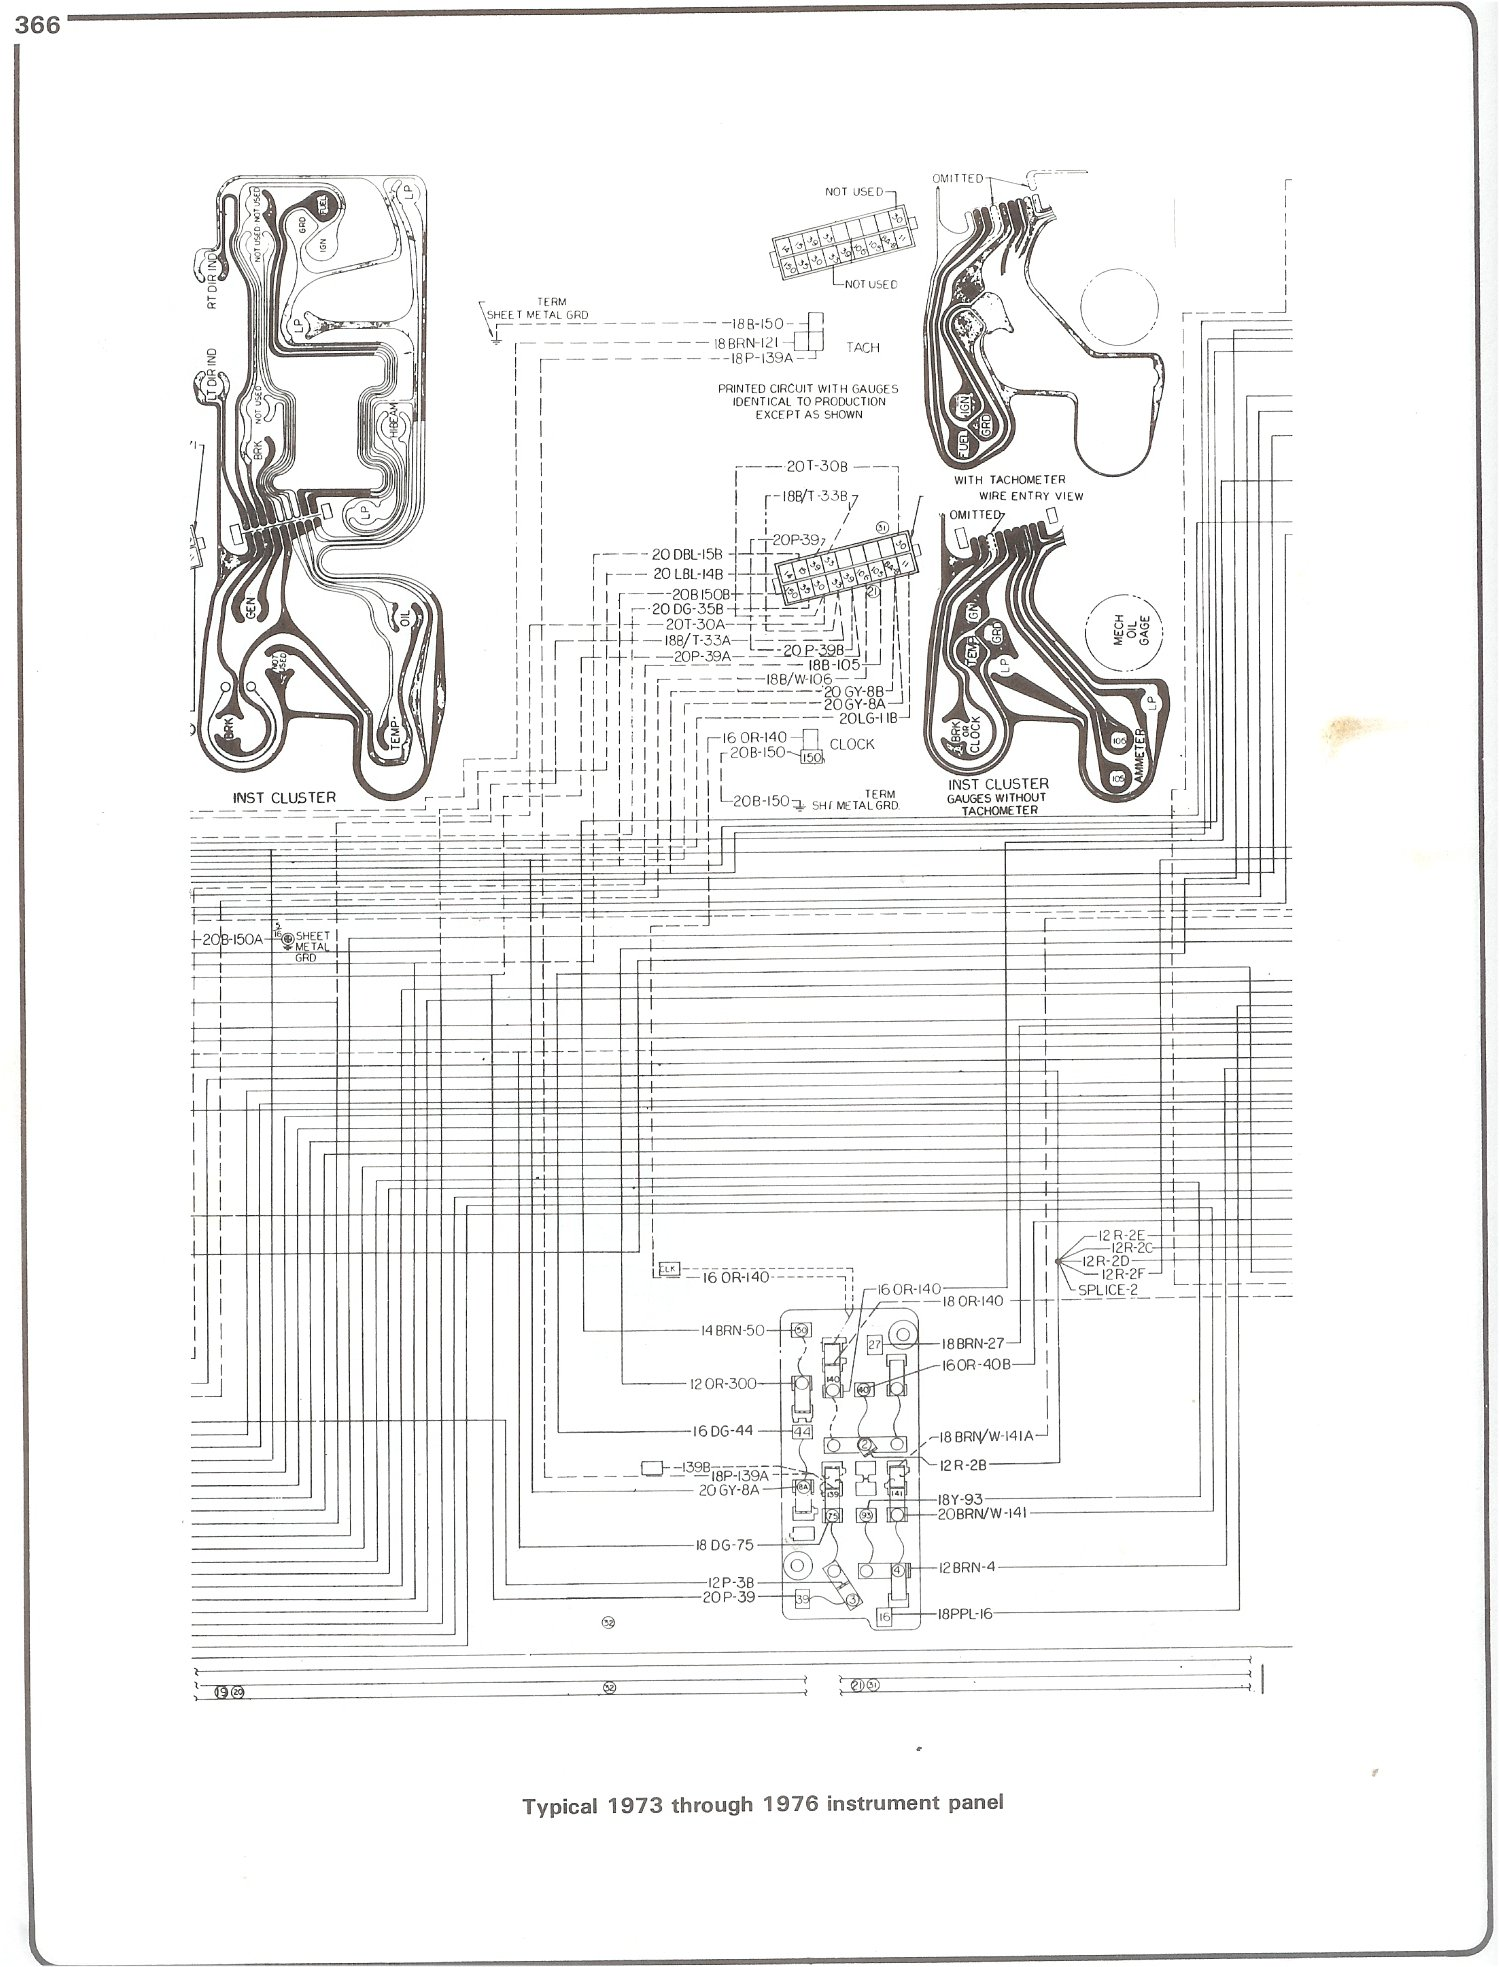 73 76_instrument complete 73 87 wiring diagrams Jeep Power Door Lock Wiring Diagram at crackthecode.co